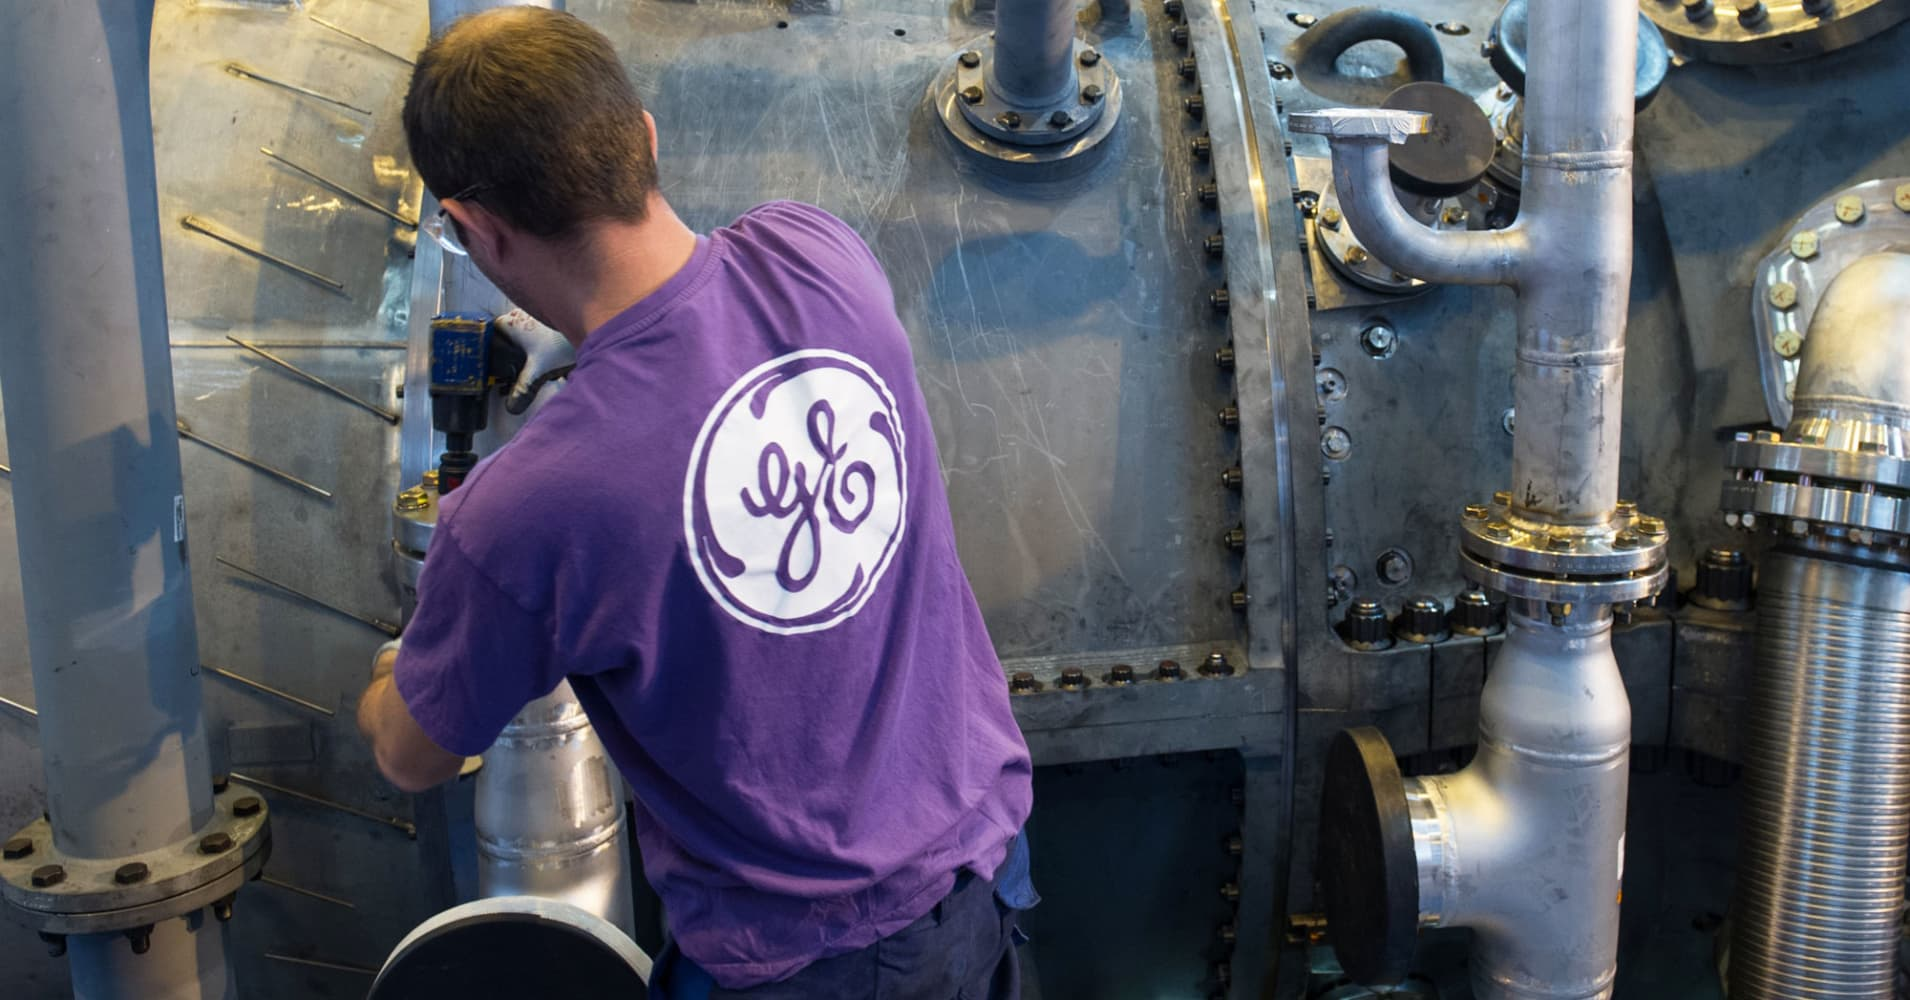 GE shares fall to 9-year low as SEC and DOJ expand investigations of accounting practices